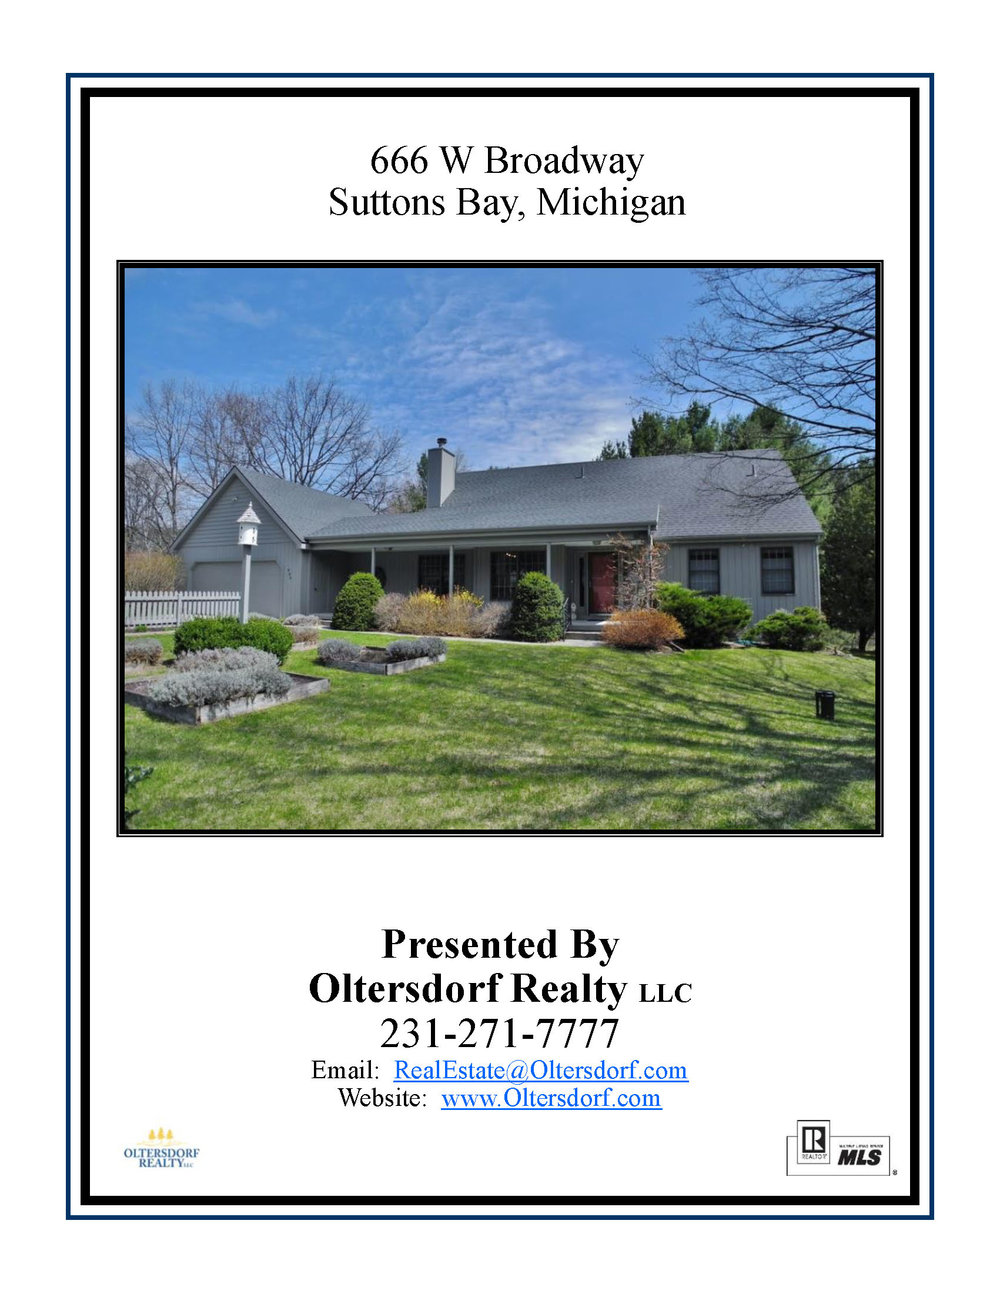 666 W Broadway, Suttons Bay – FOR SALE by Oltersdorf Realty, Leelanau County Real Estate - Marketing Packet (1).jpg